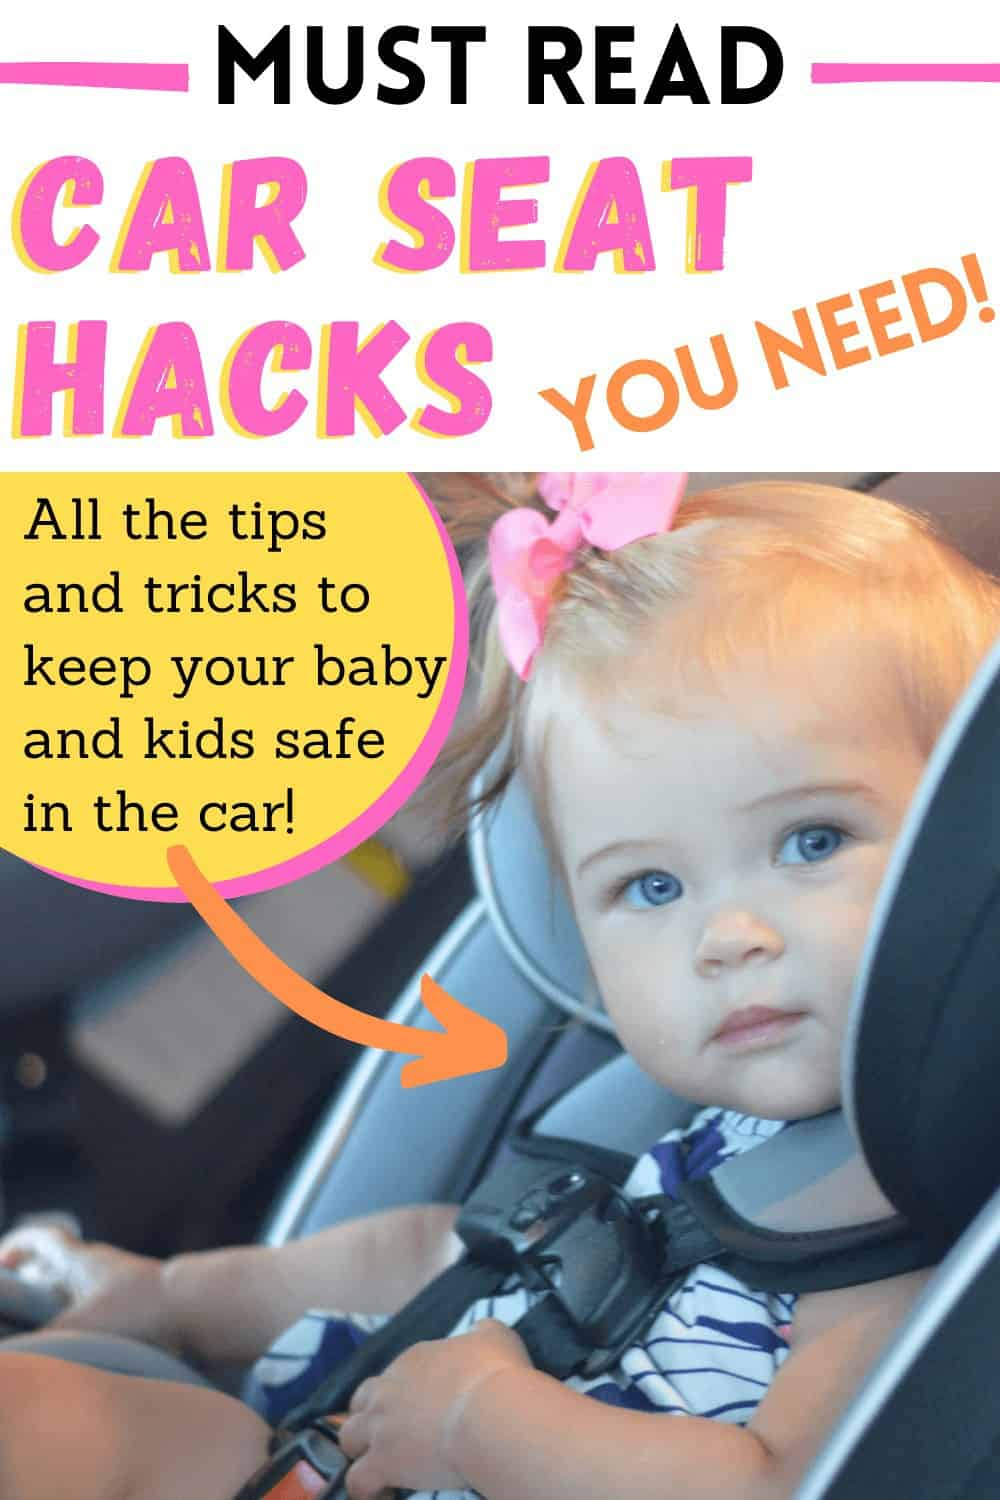 car seat hacks including how to clean vomit from car seat and how to fix a stuck car seat